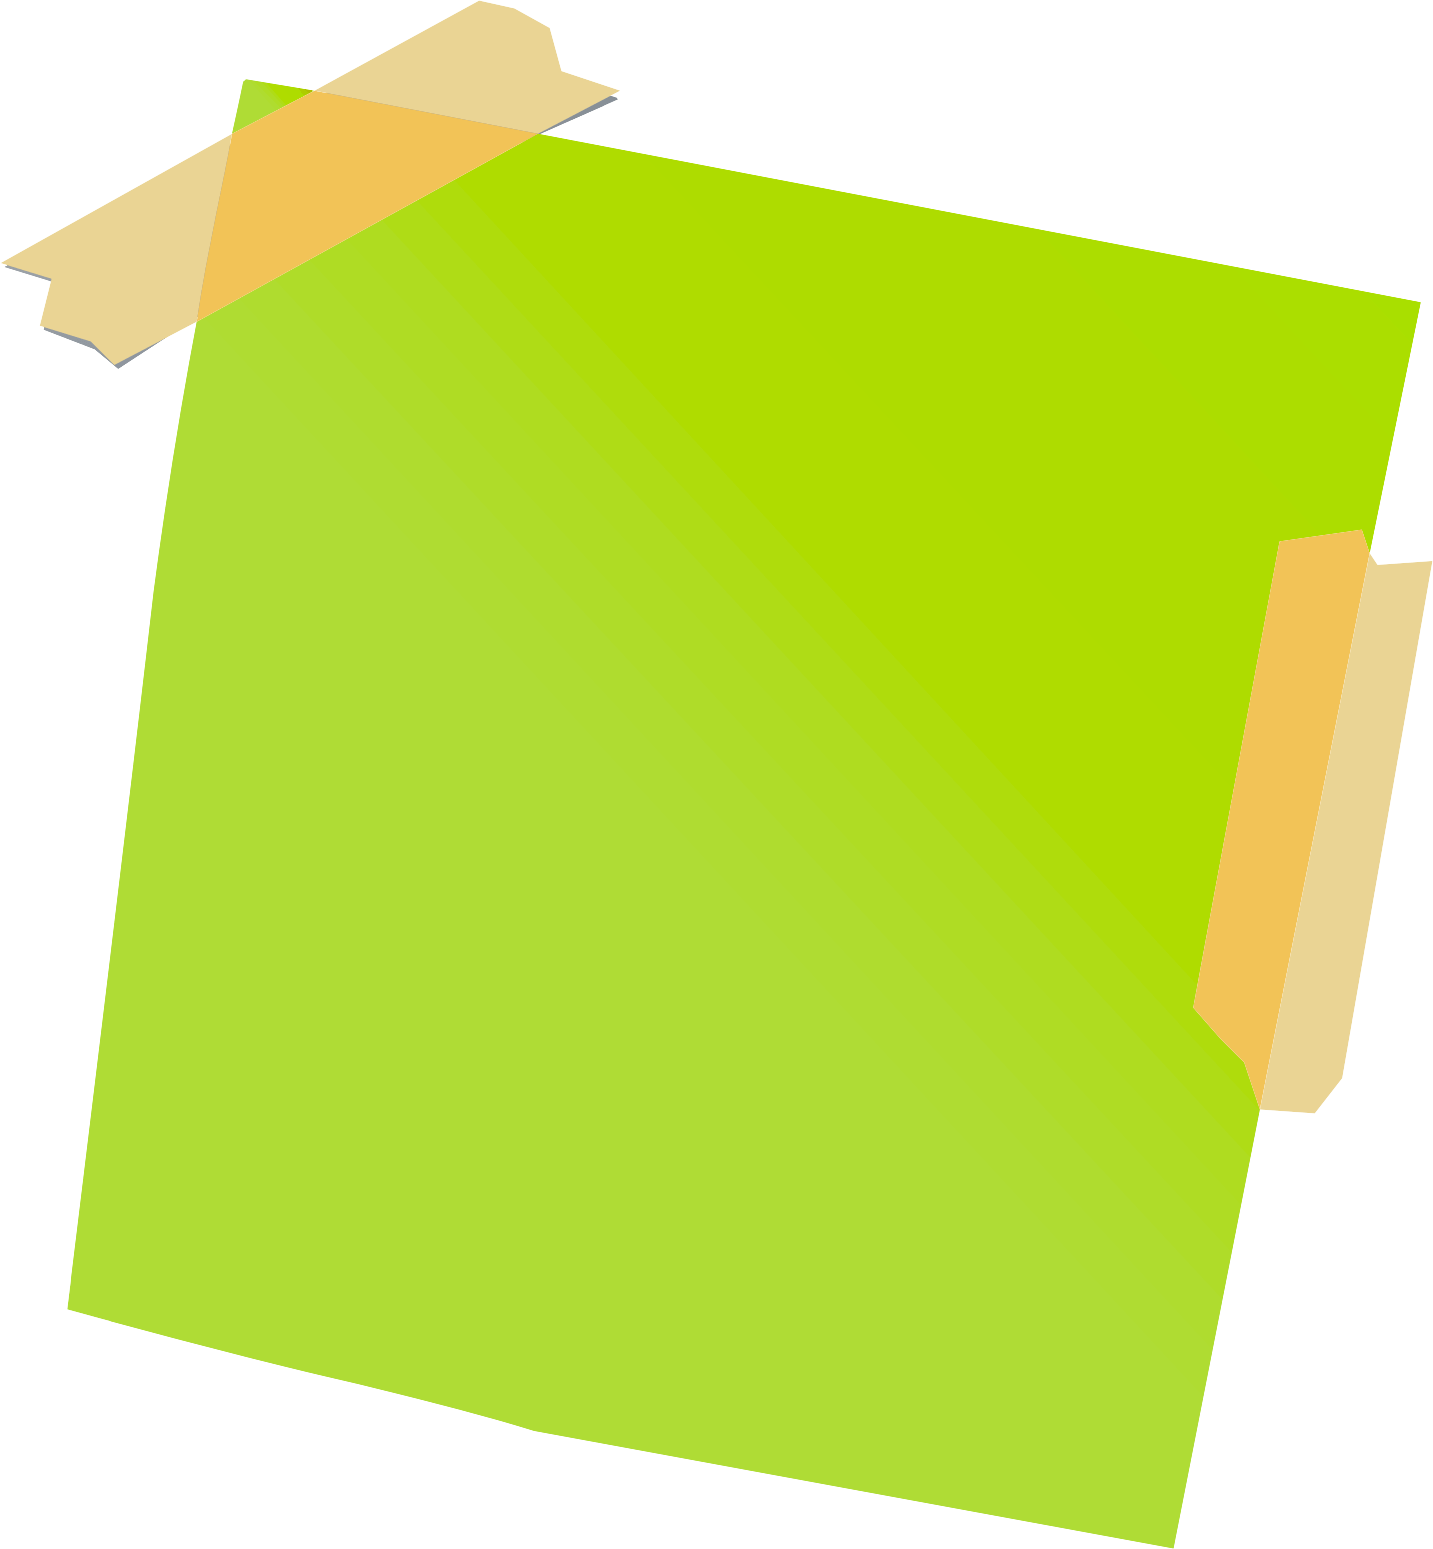 Green clipart sticky note. With tape transparent png